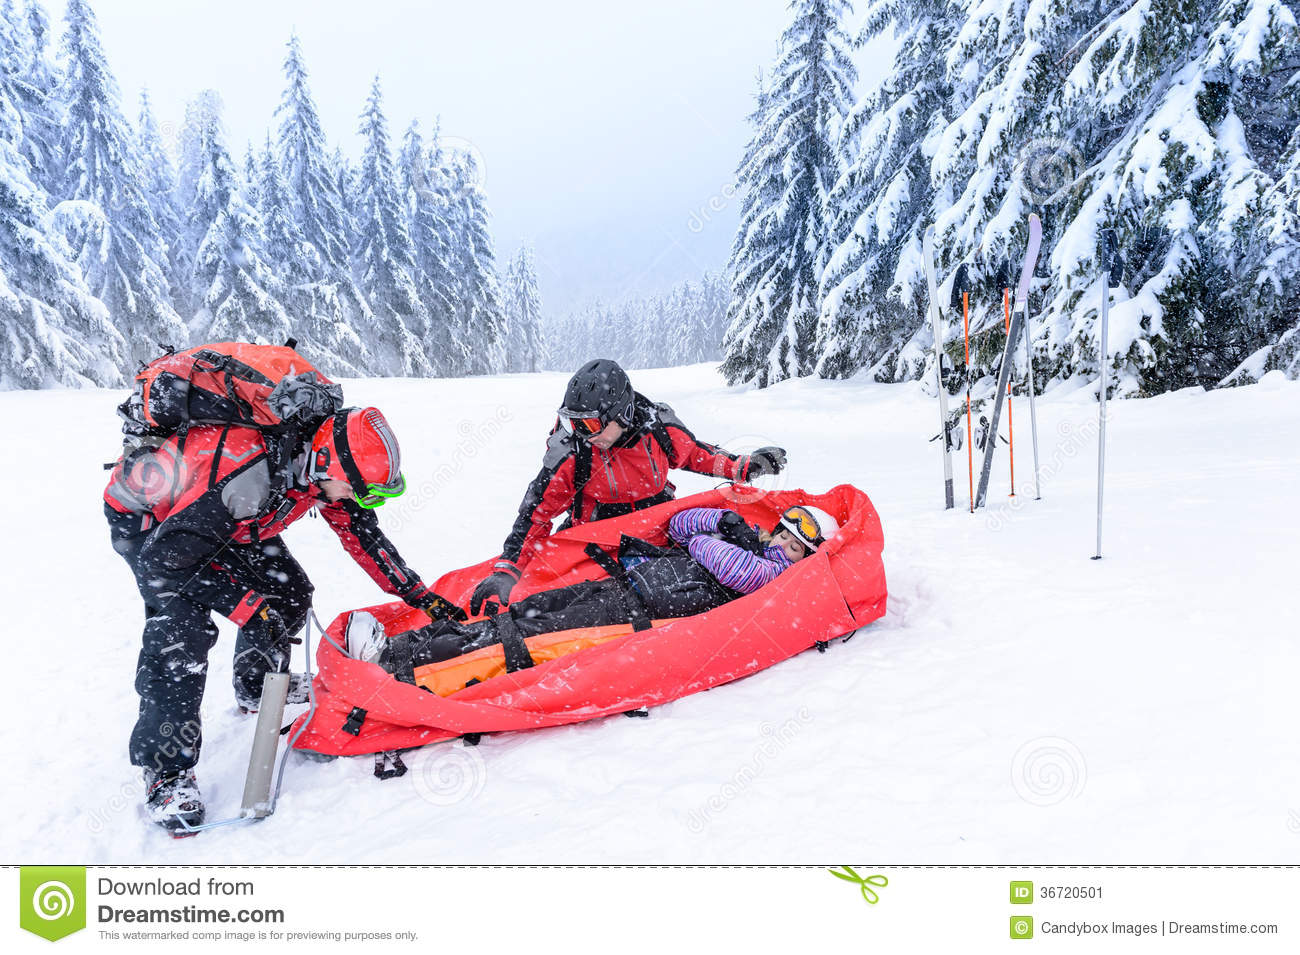 banff heli skiing with Stock Image Ski Patrol Rescue Sled Injured Woman Helping Women Snow Forest Image36720501 on 488 further Crans Montana as well Banff National Park likewise Banff National Park also Hiking Johnston Canyon Banff National Park.